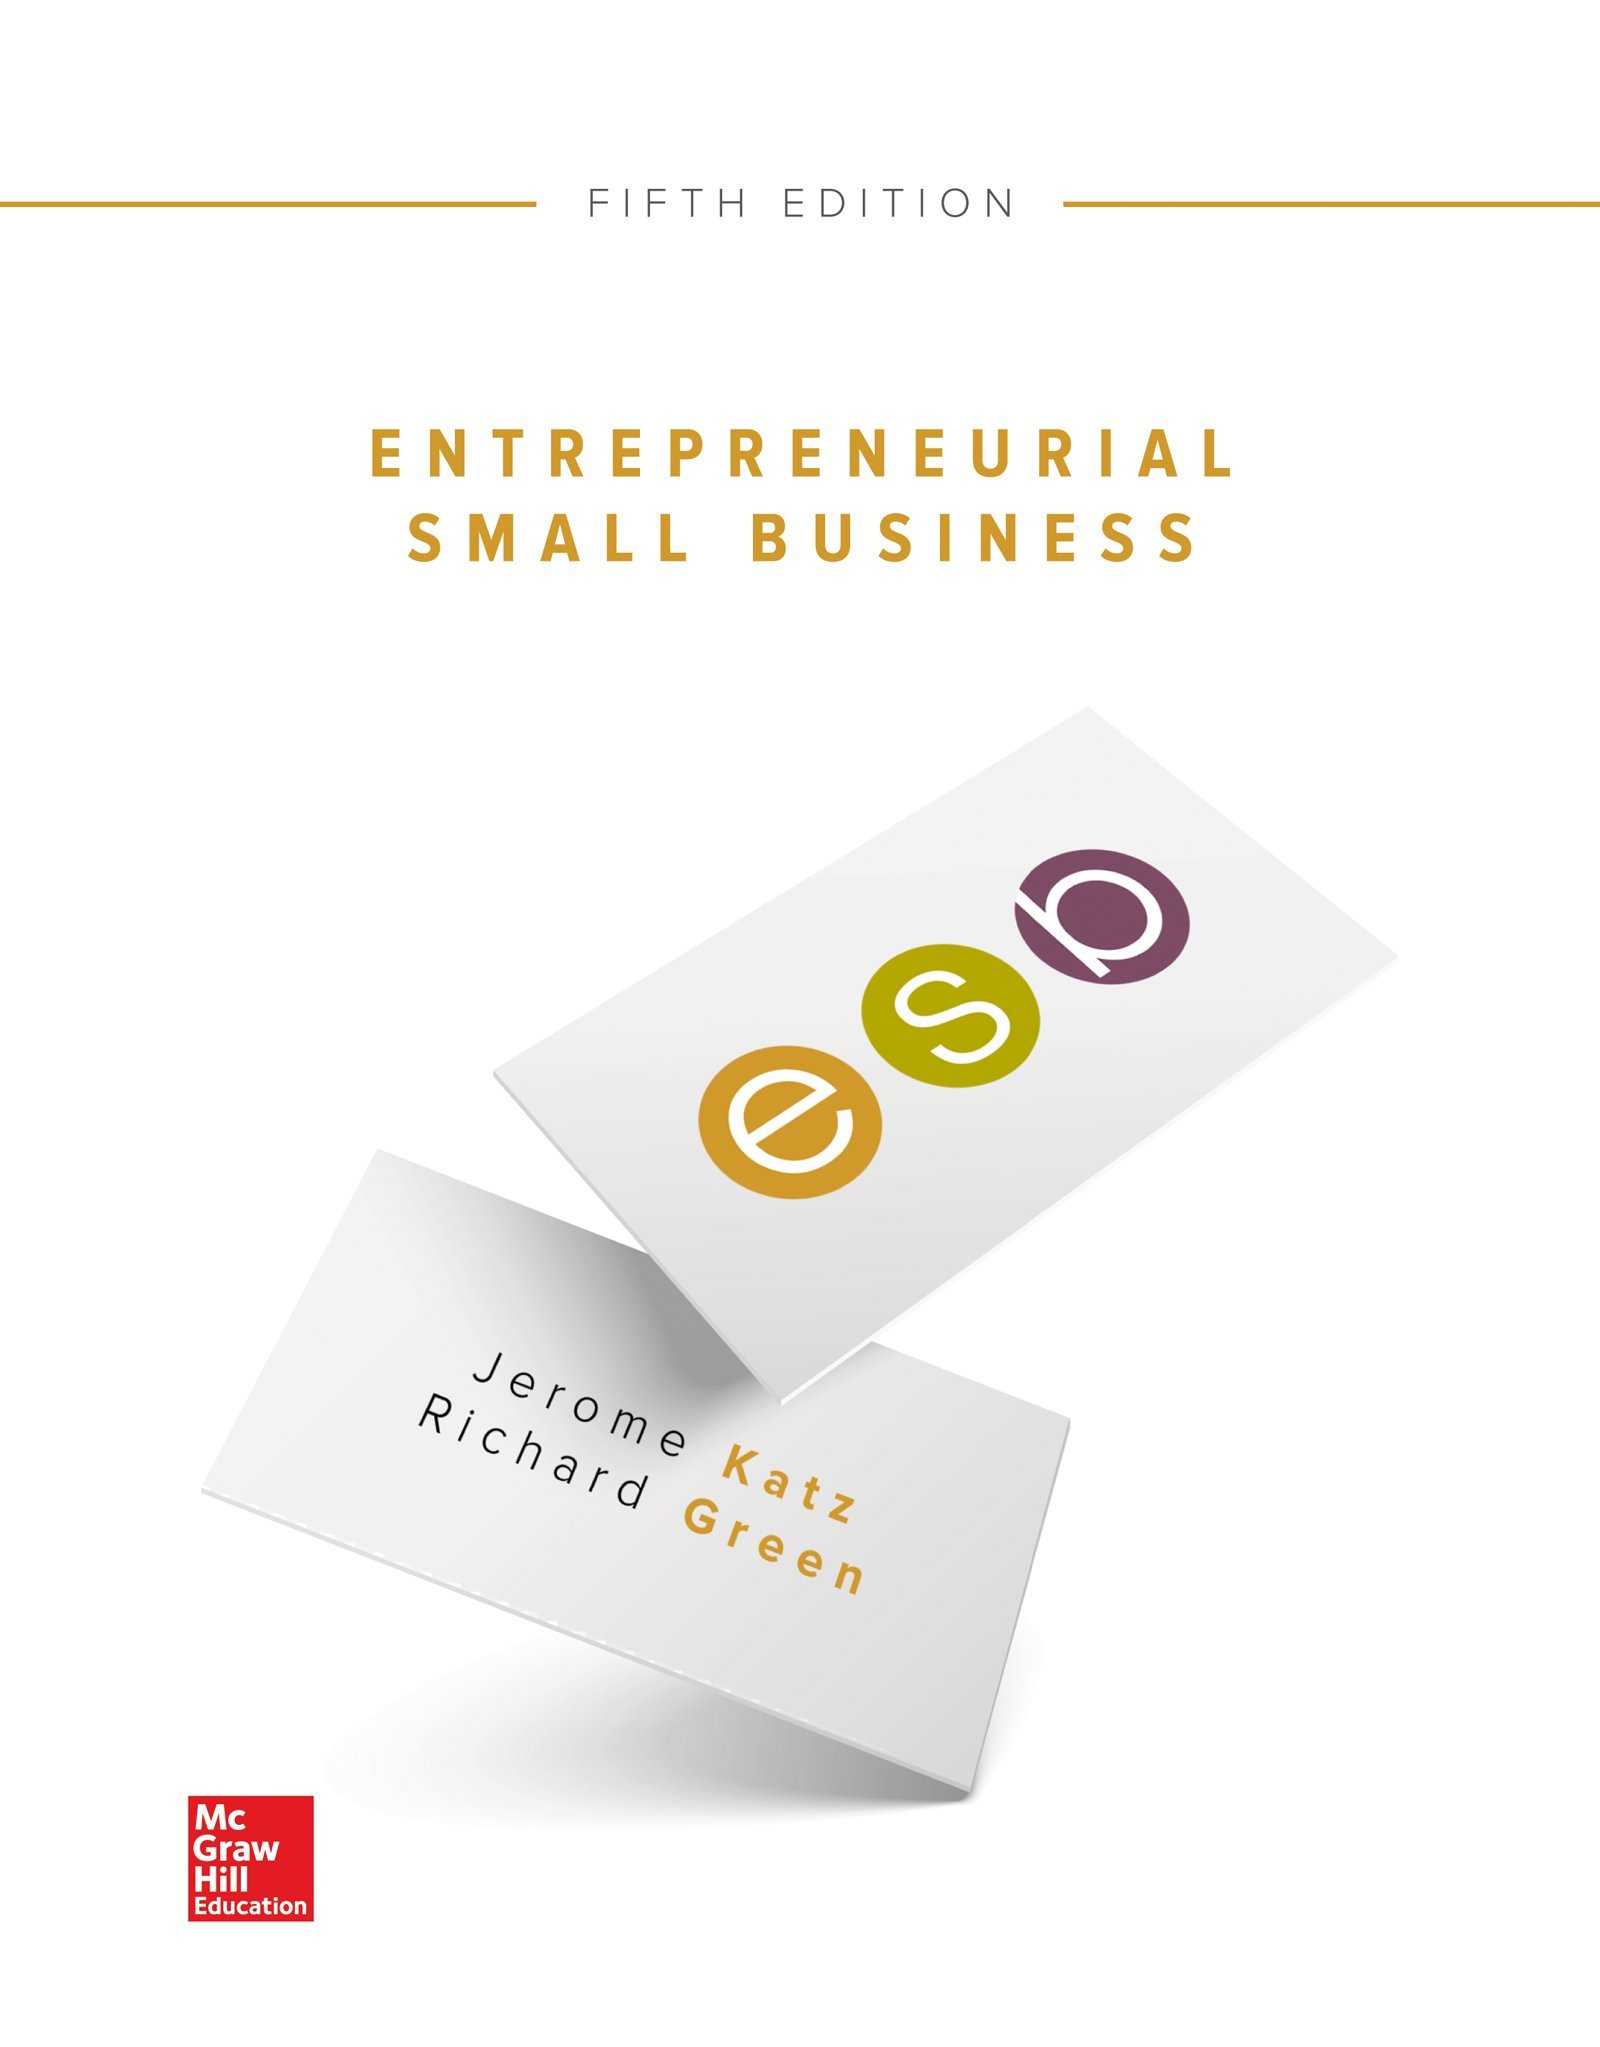 Entrepreneurial Small Business by McGraw-Hill Education